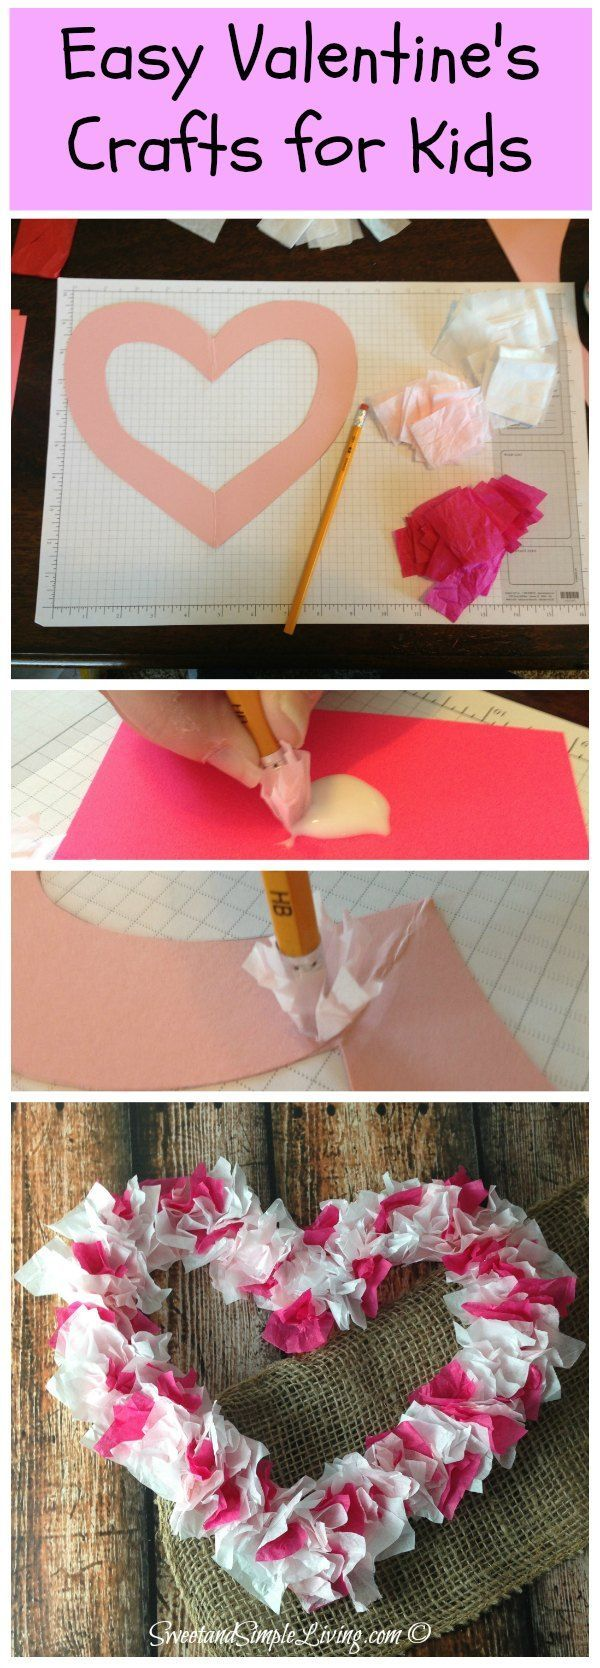 Valentines Crafts for Kids: Tissue Paper Heart. Great snow day activity. From SweetandSimpleLiving.com